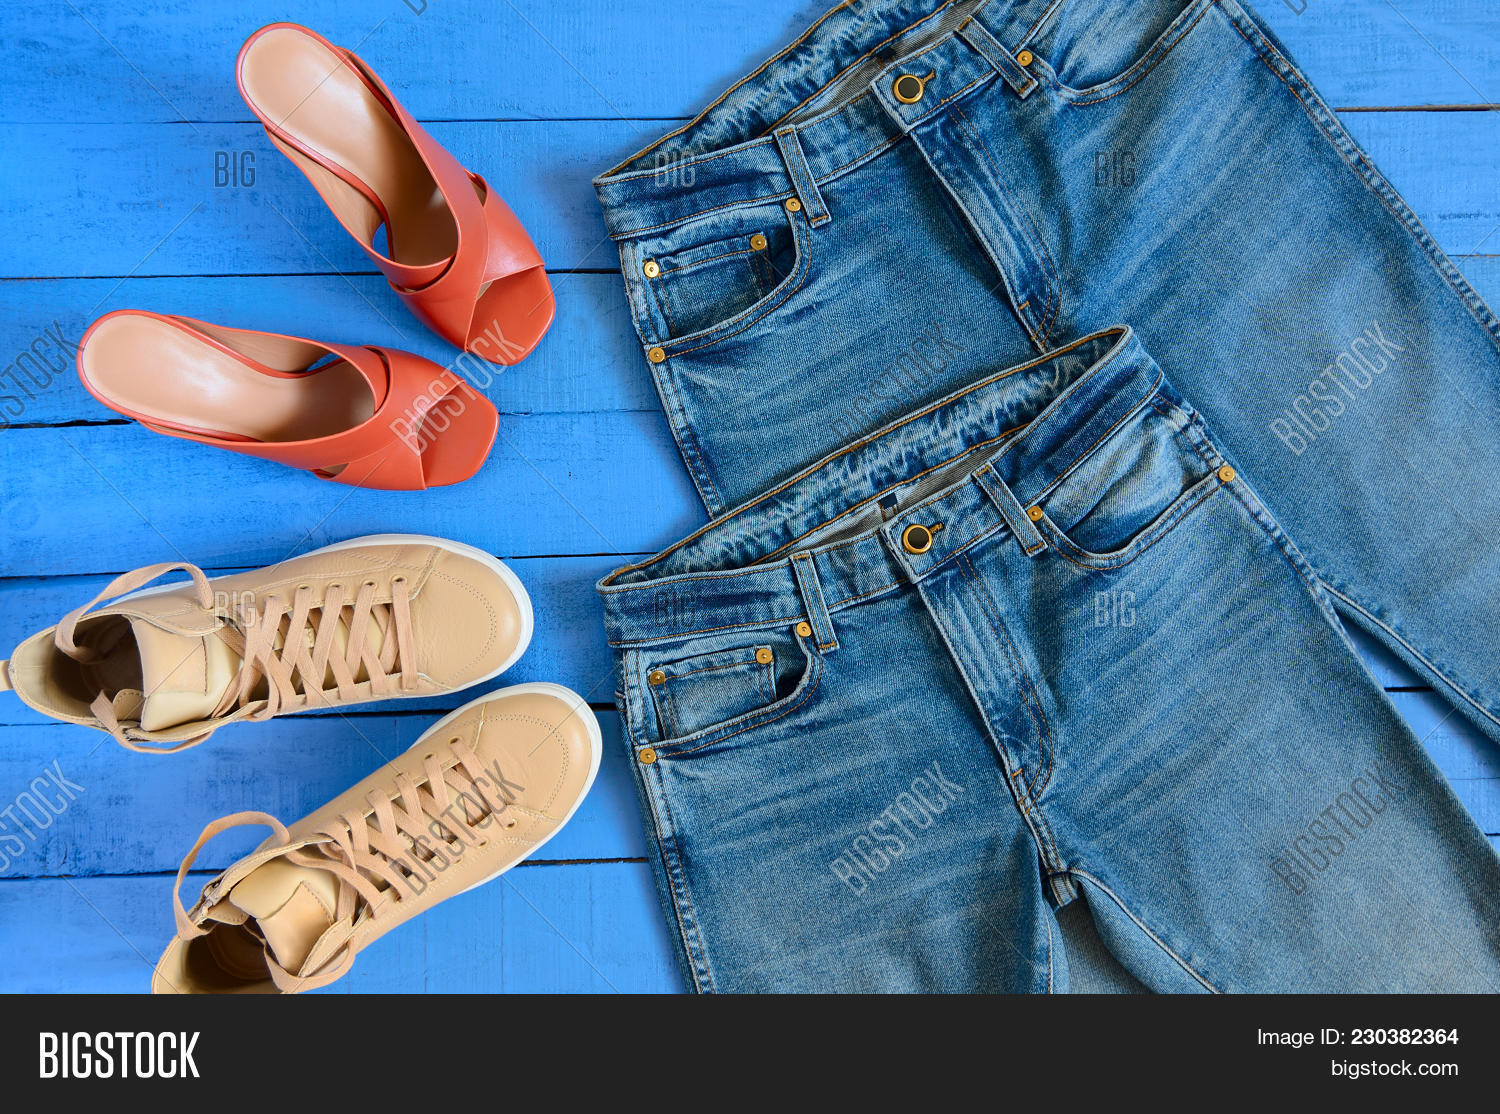 Womens Clothing, Image & Photo (Free Trial) | Bigstock